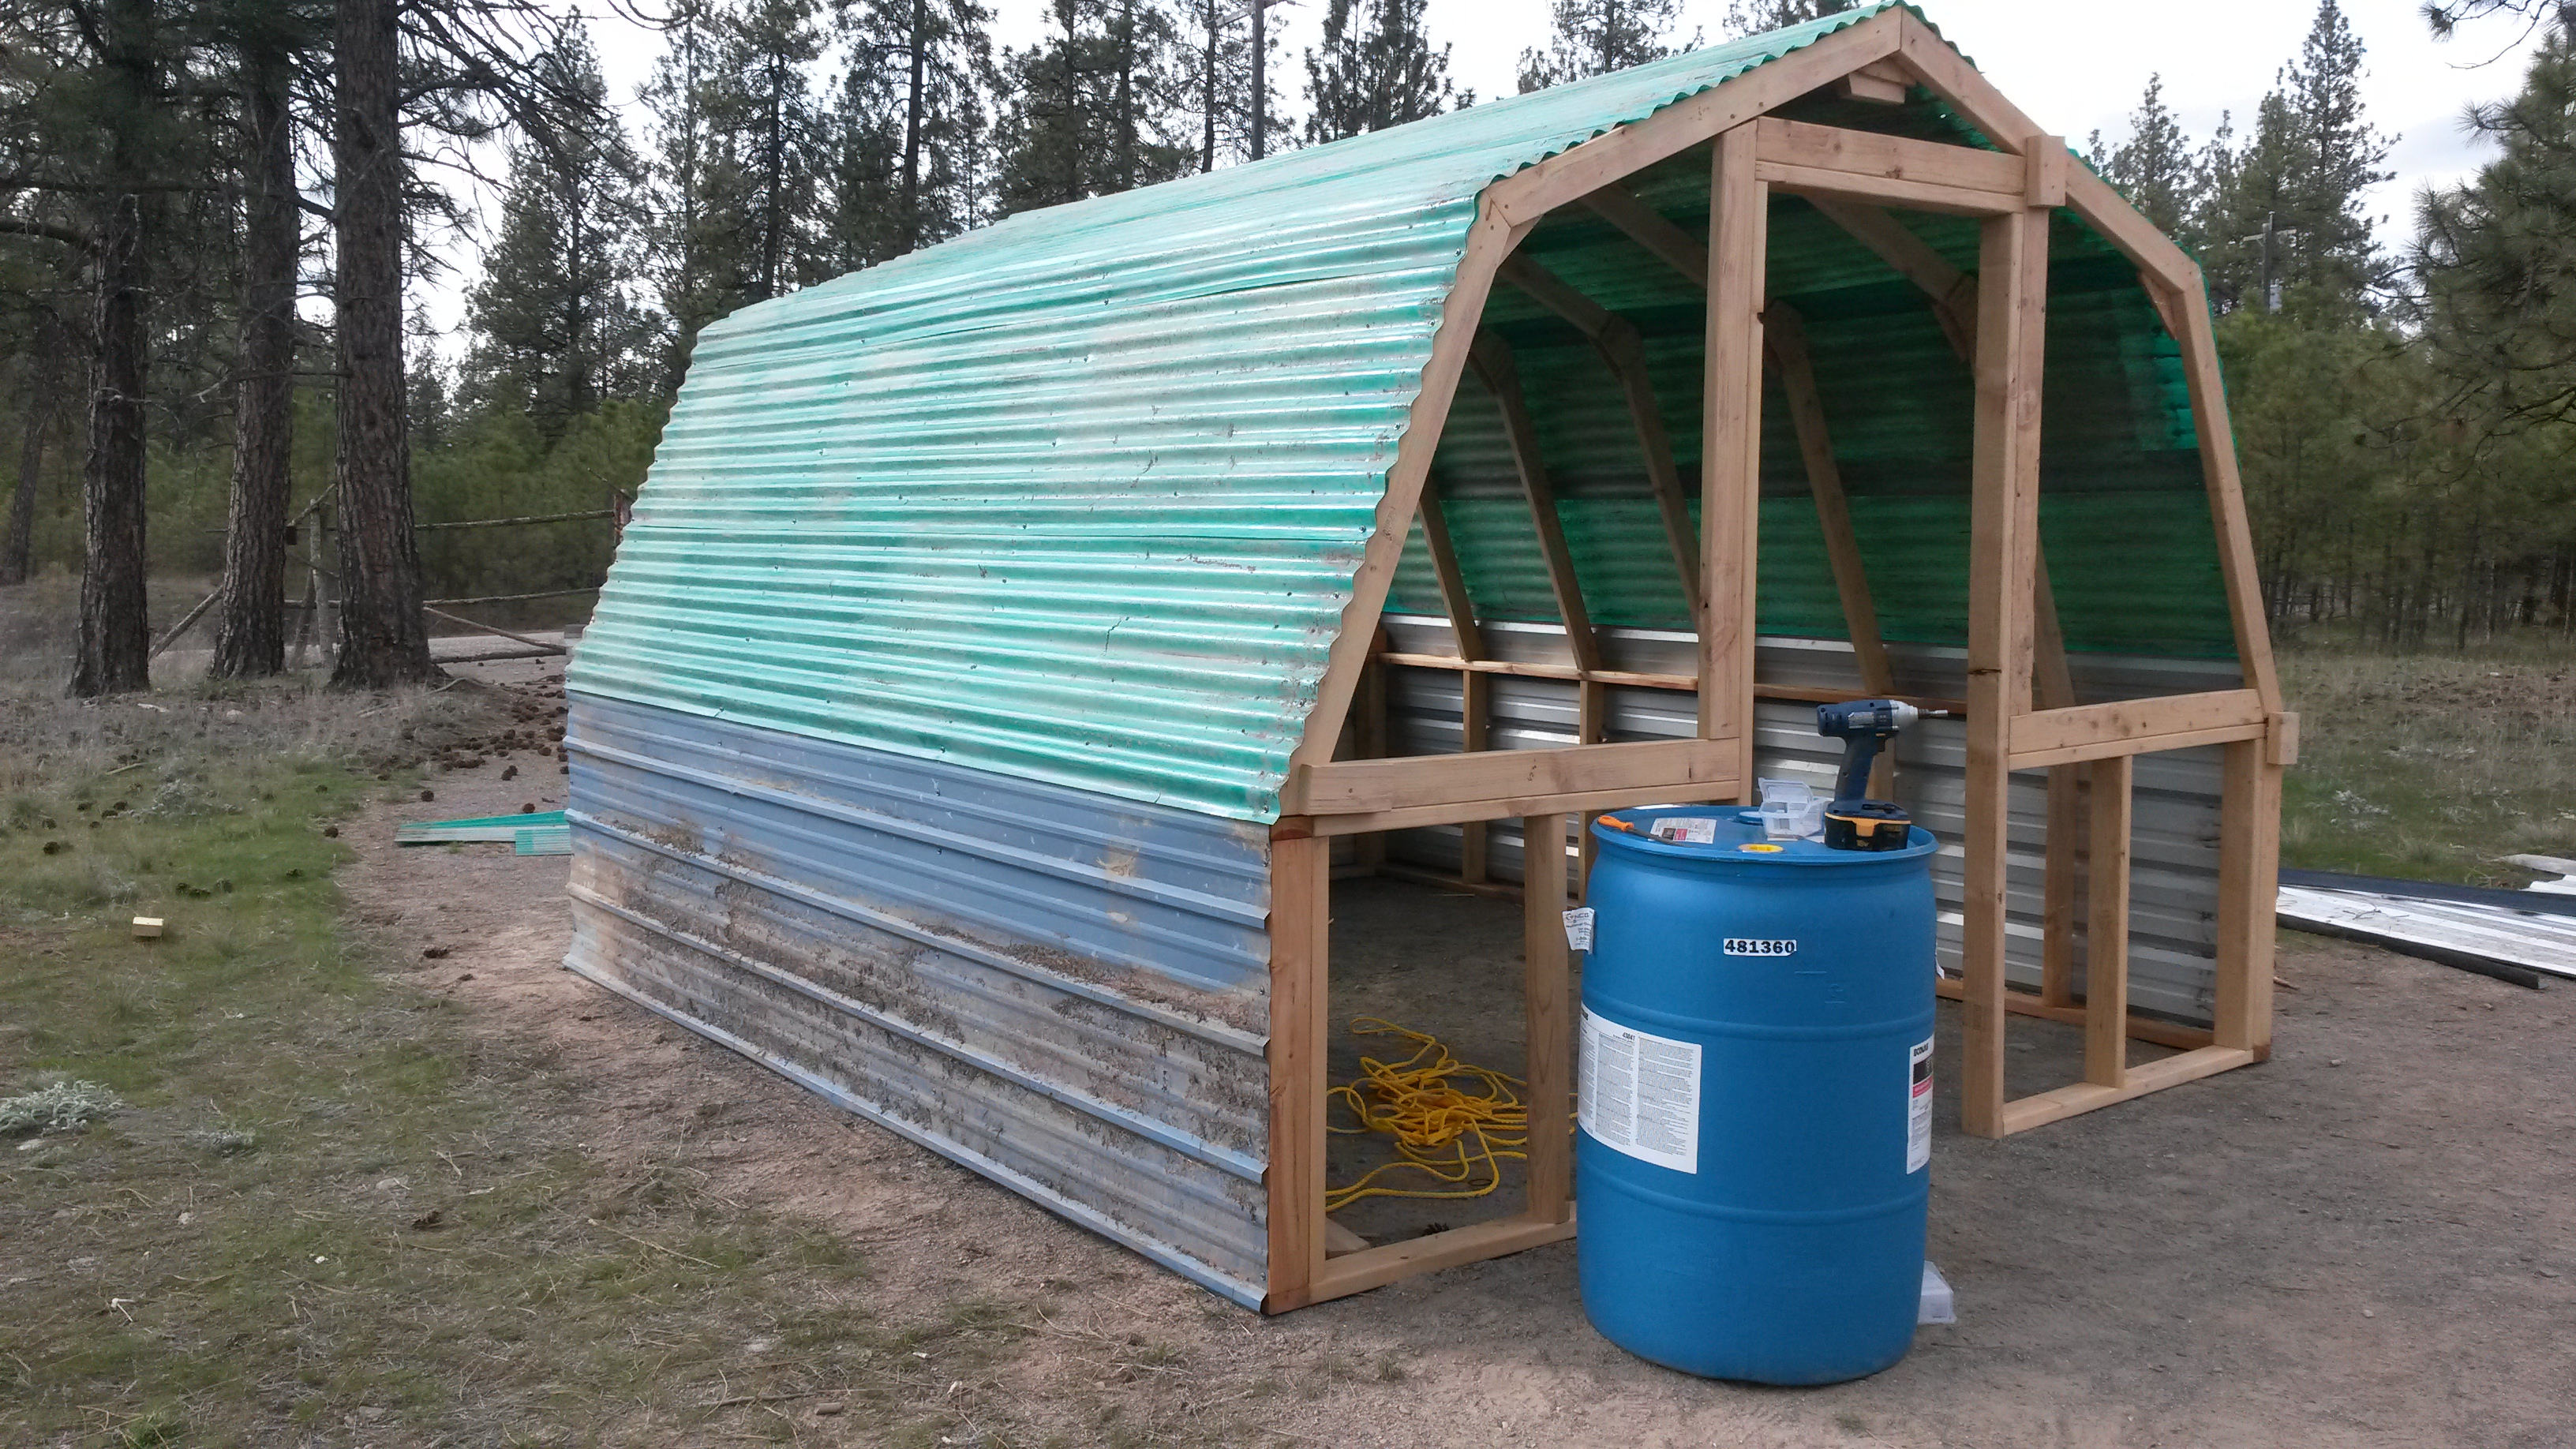 sheds buy garden backyard a where pin for search to plans contemporary designs shed diy